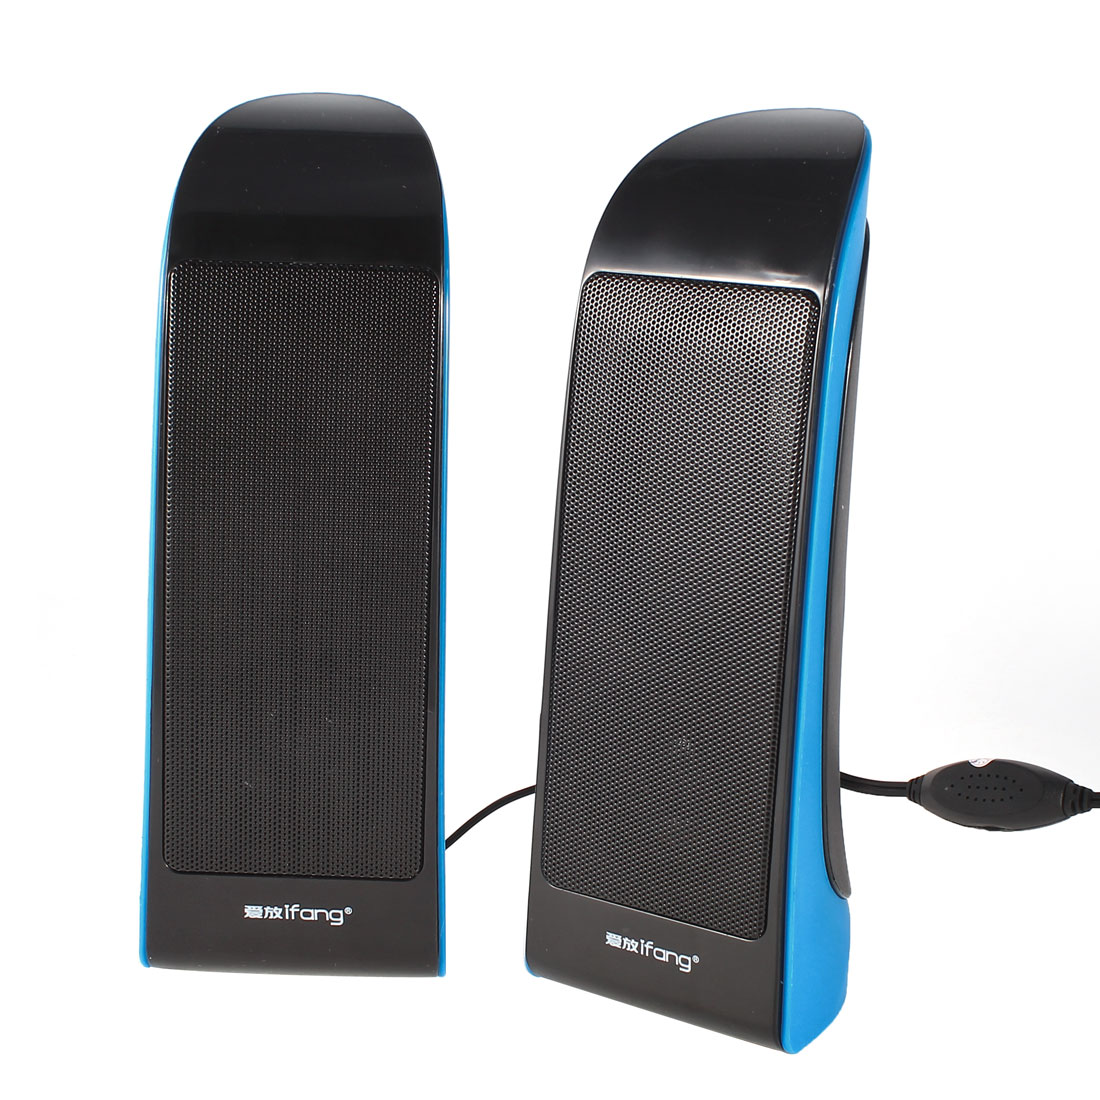 Pair Blue Black Desktop PC Laptop Volume Control USB 2.0 Mini Speaker Box